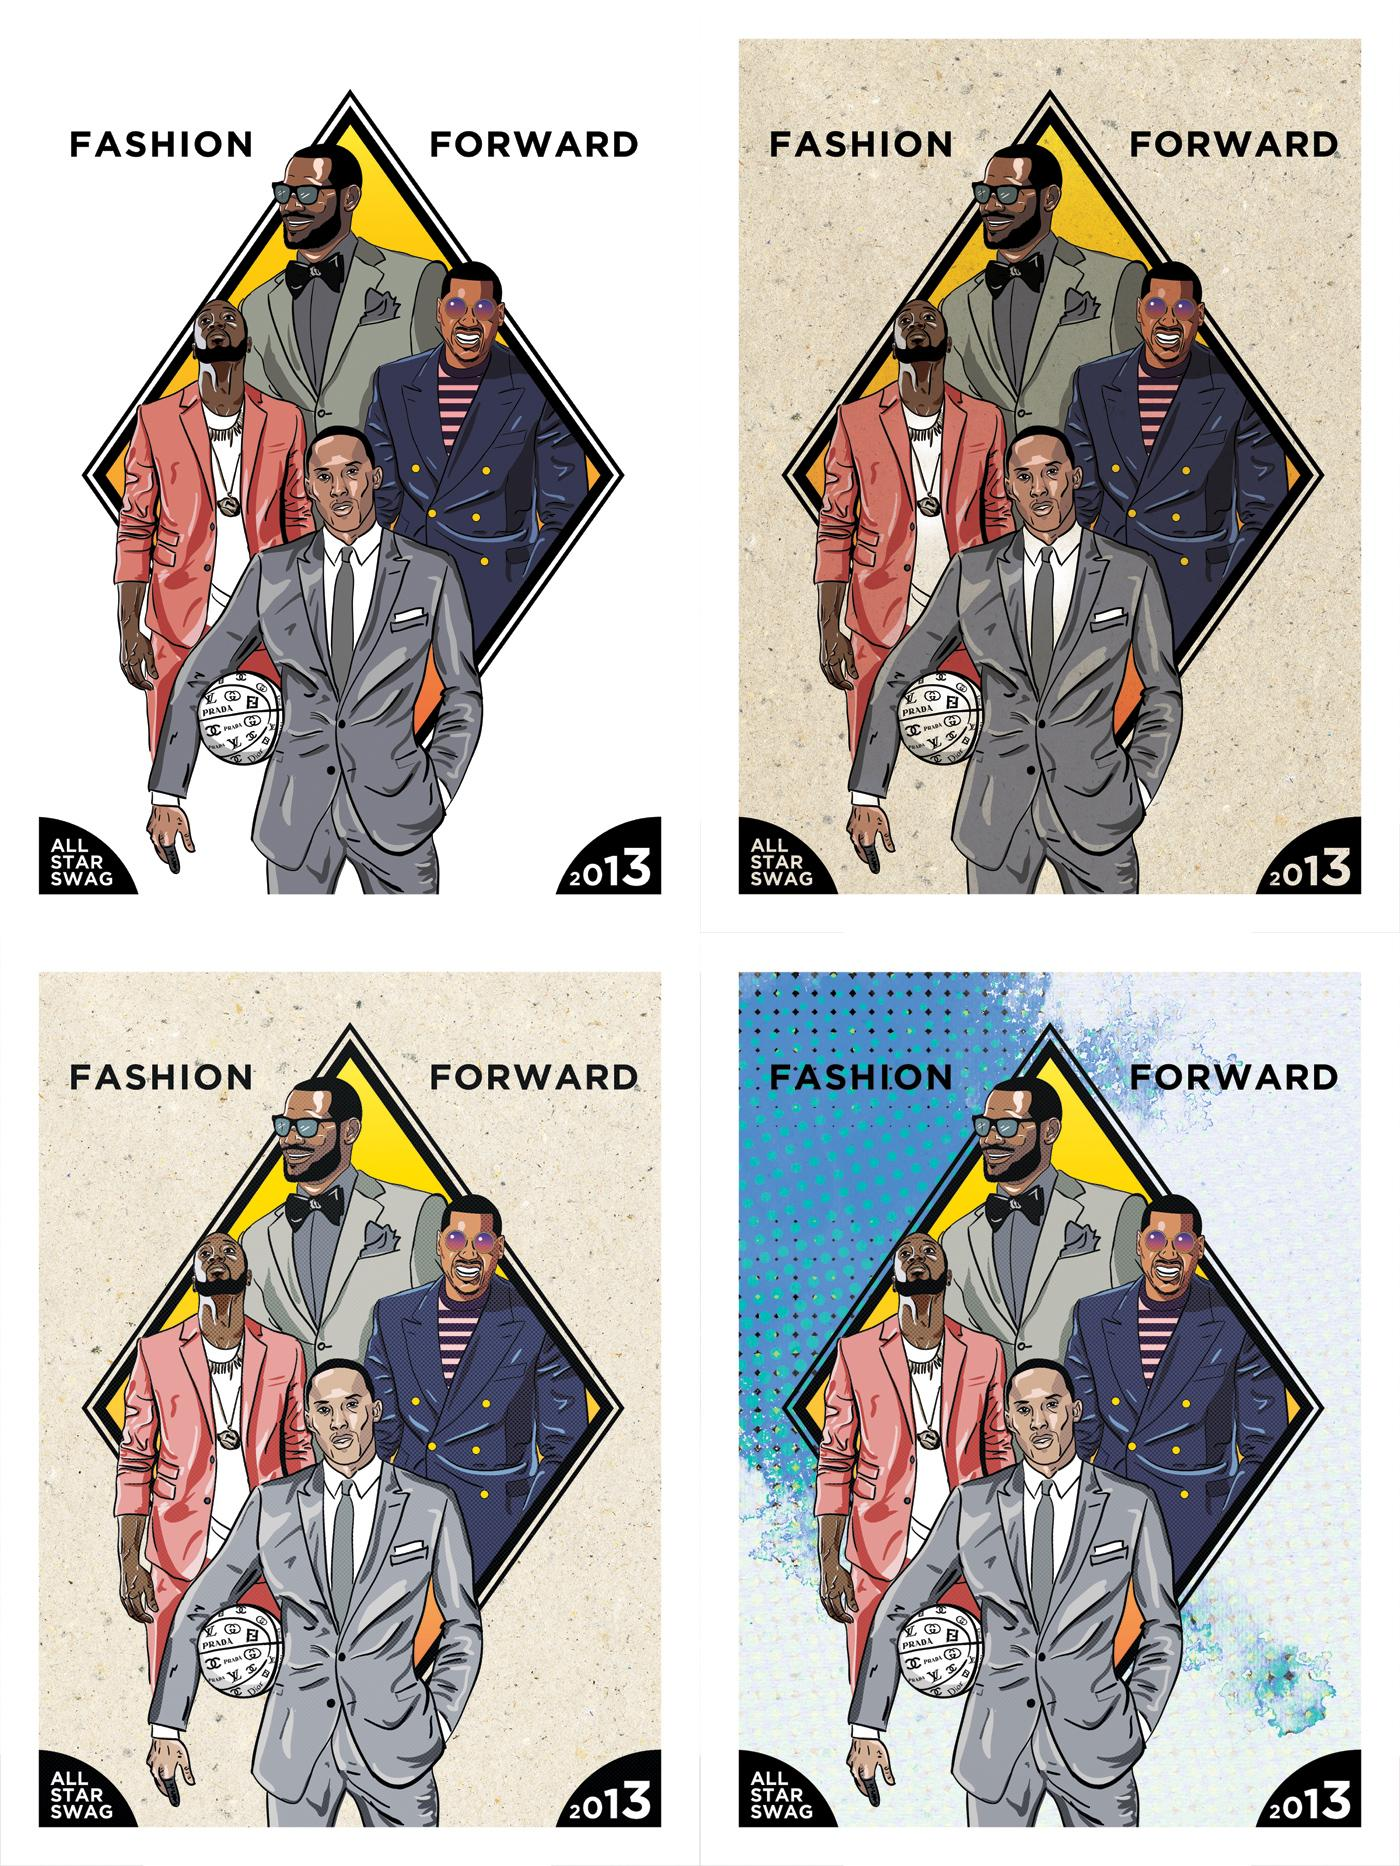 NBA All-Stars Fashion Poster - image 2 - student project